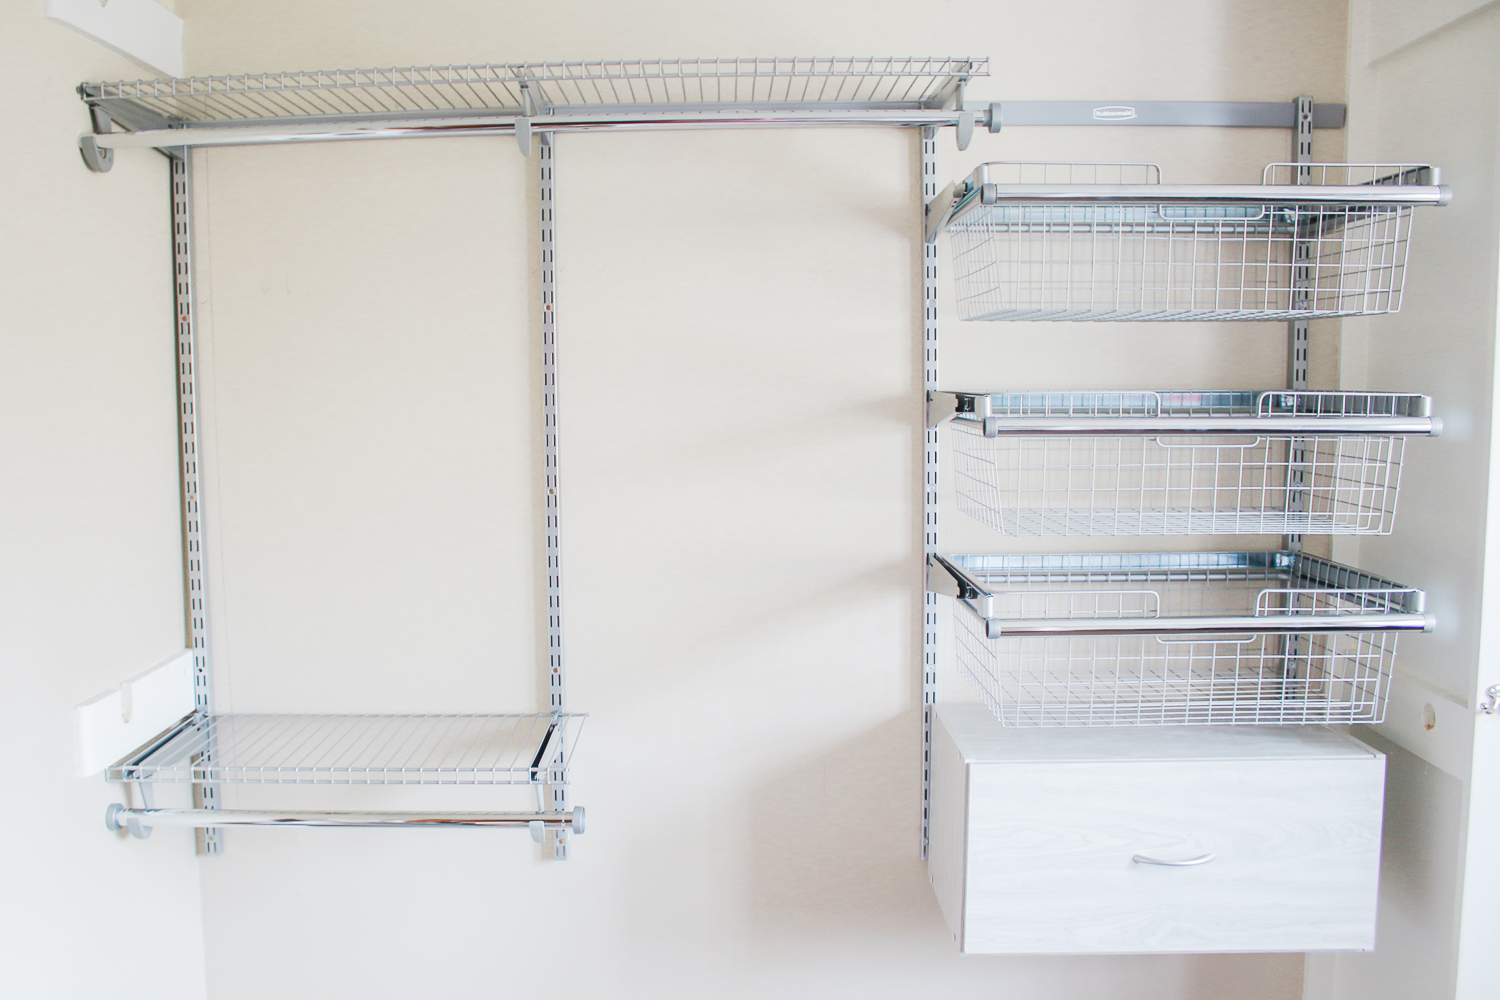 Rubbermaid FastTrack wire sliding baskets, Rubbermaid FastTrack wood drawer unit, How To: Refresh Your Closet with a Rubbermaid FastTrack Closet System by Stephanie Ziajka from the popular southern lifestyle blog Diary of a Debutante, Rubbermaid FastTrack Closet Organization System review and install, affordable custom closet system